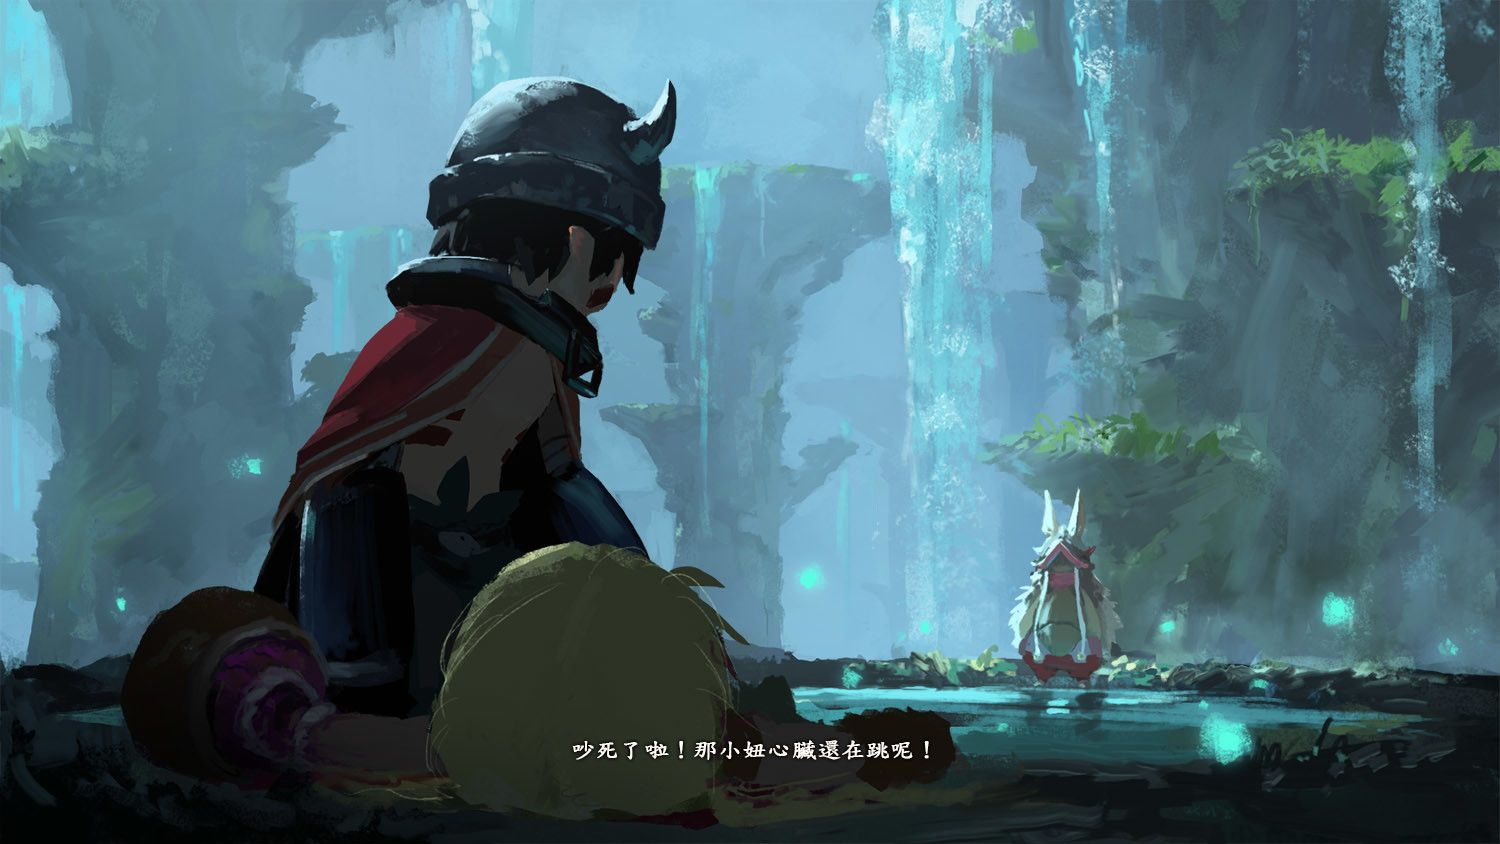 Art by Shen YH, imagining 'Made in Abyss' as a video game